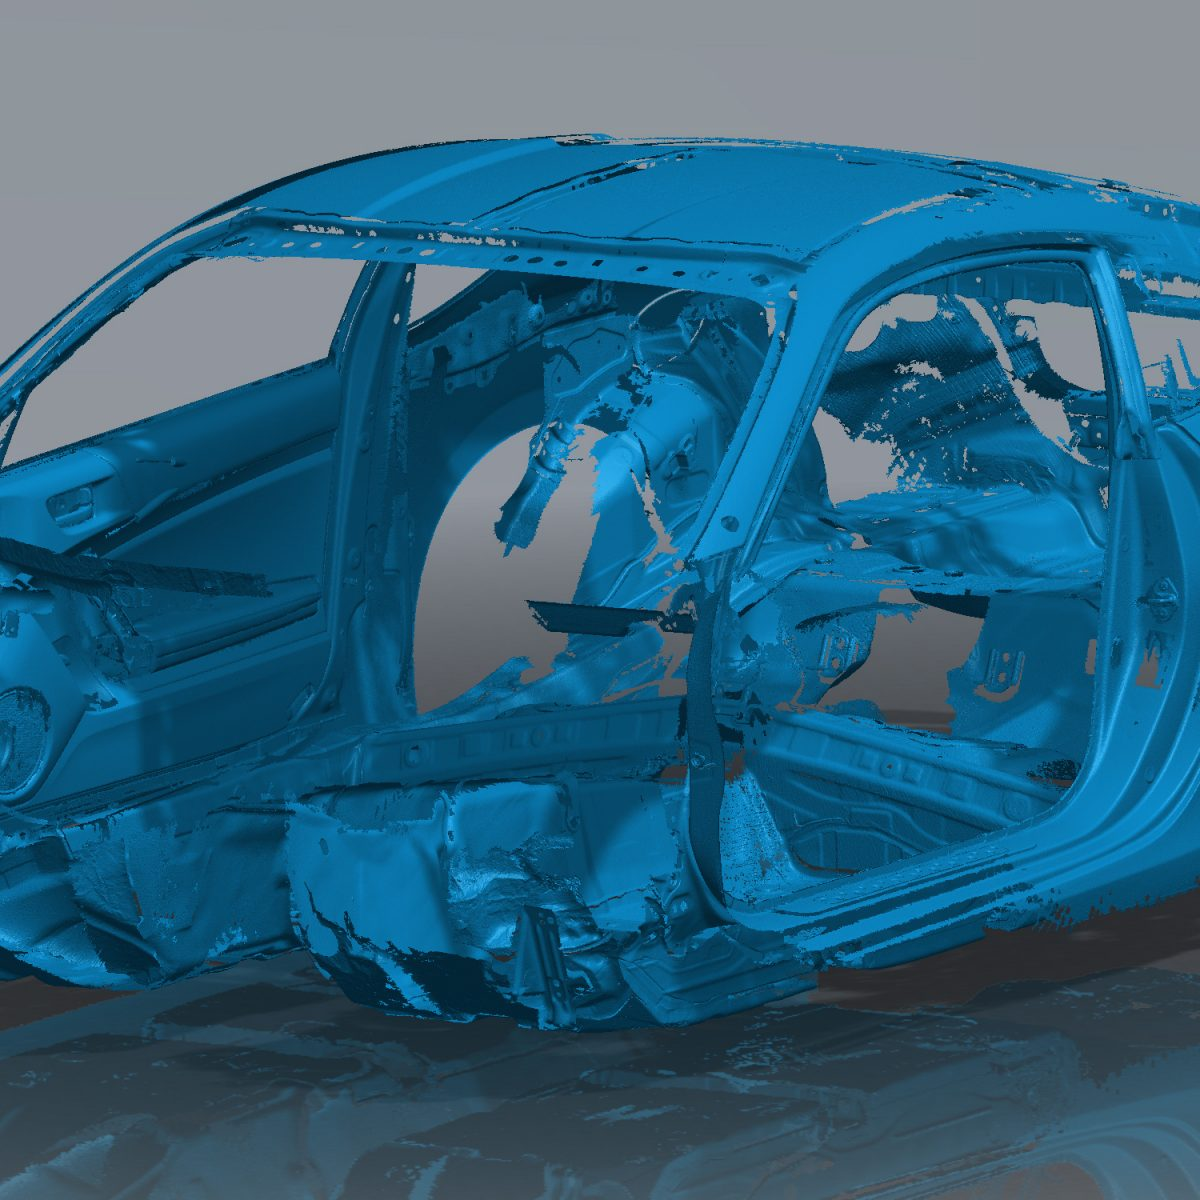 FRS BRZ Roll Cage